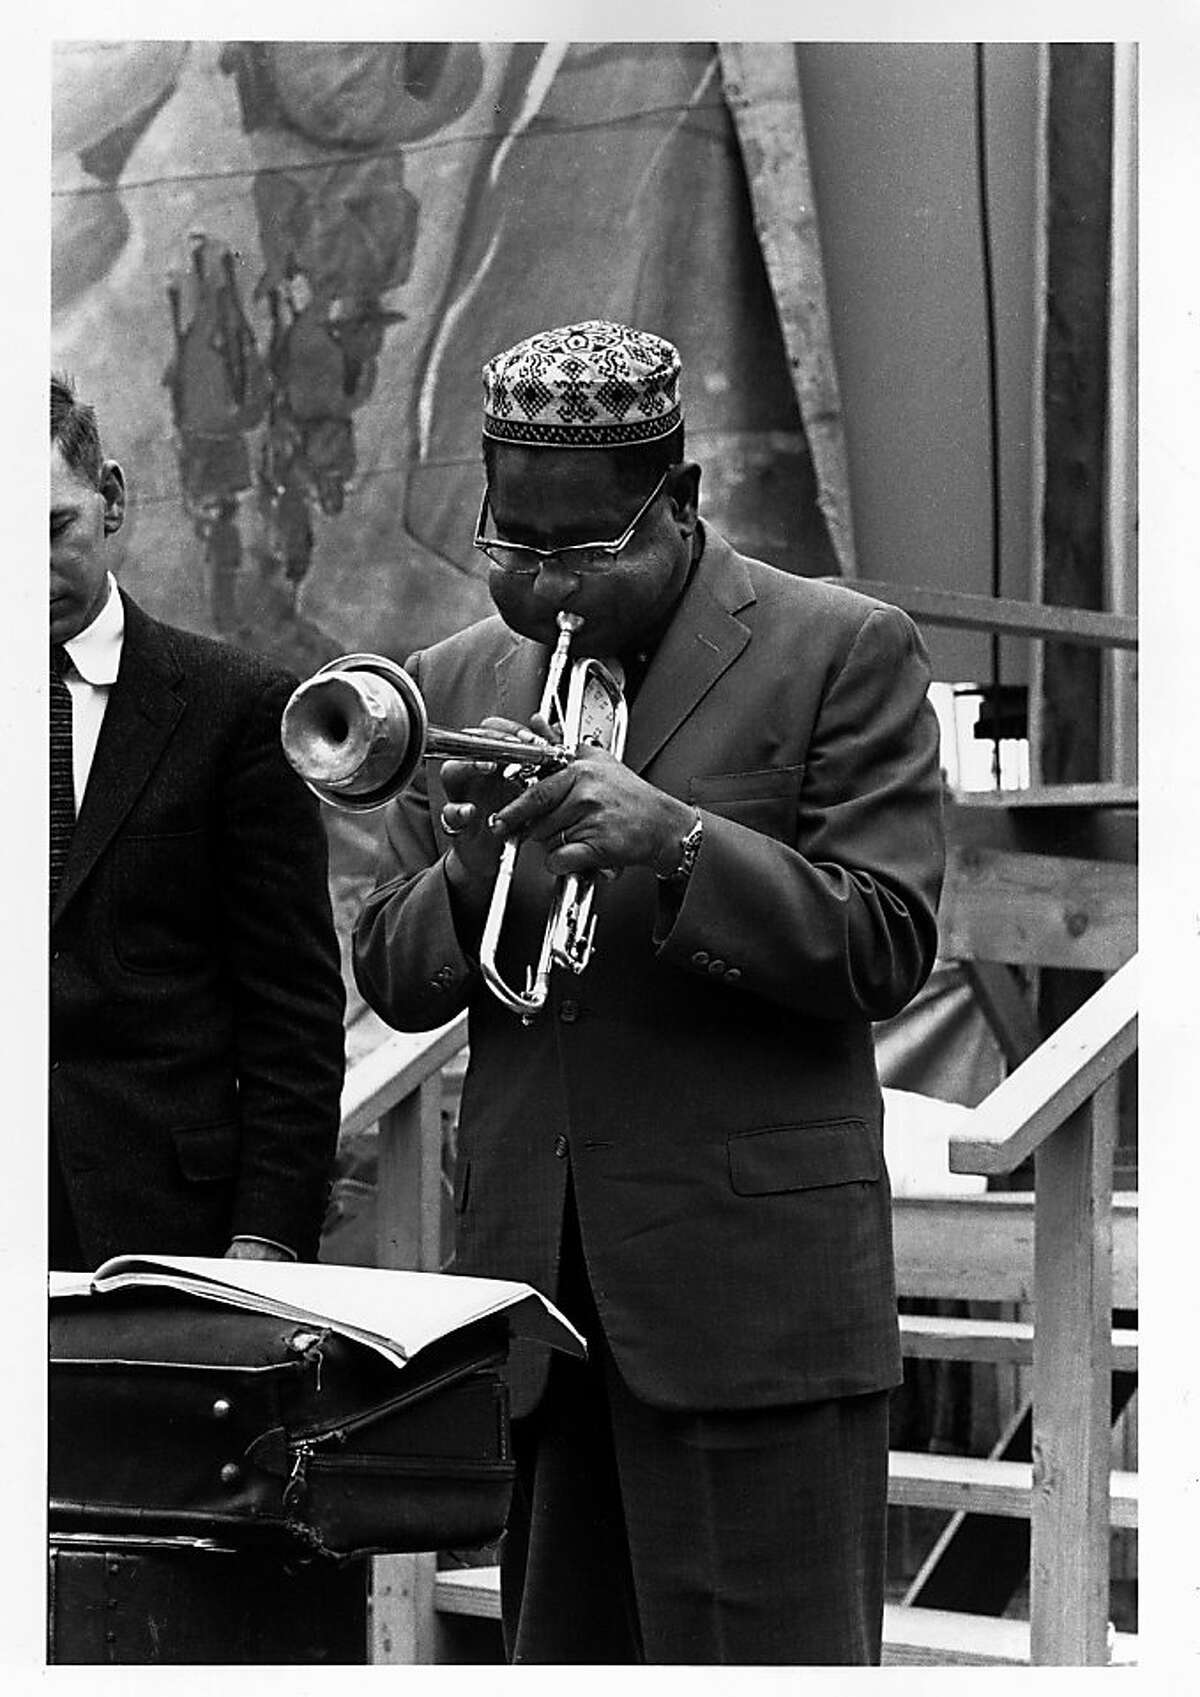 The inaugural edition of the Monterey Jazz Festival included premier jazz trumpeter Dizzy Gillespie, who would return many times over the years before his death in 1993. From the book Monterey Jazz Festival: Forty Legendary Years.